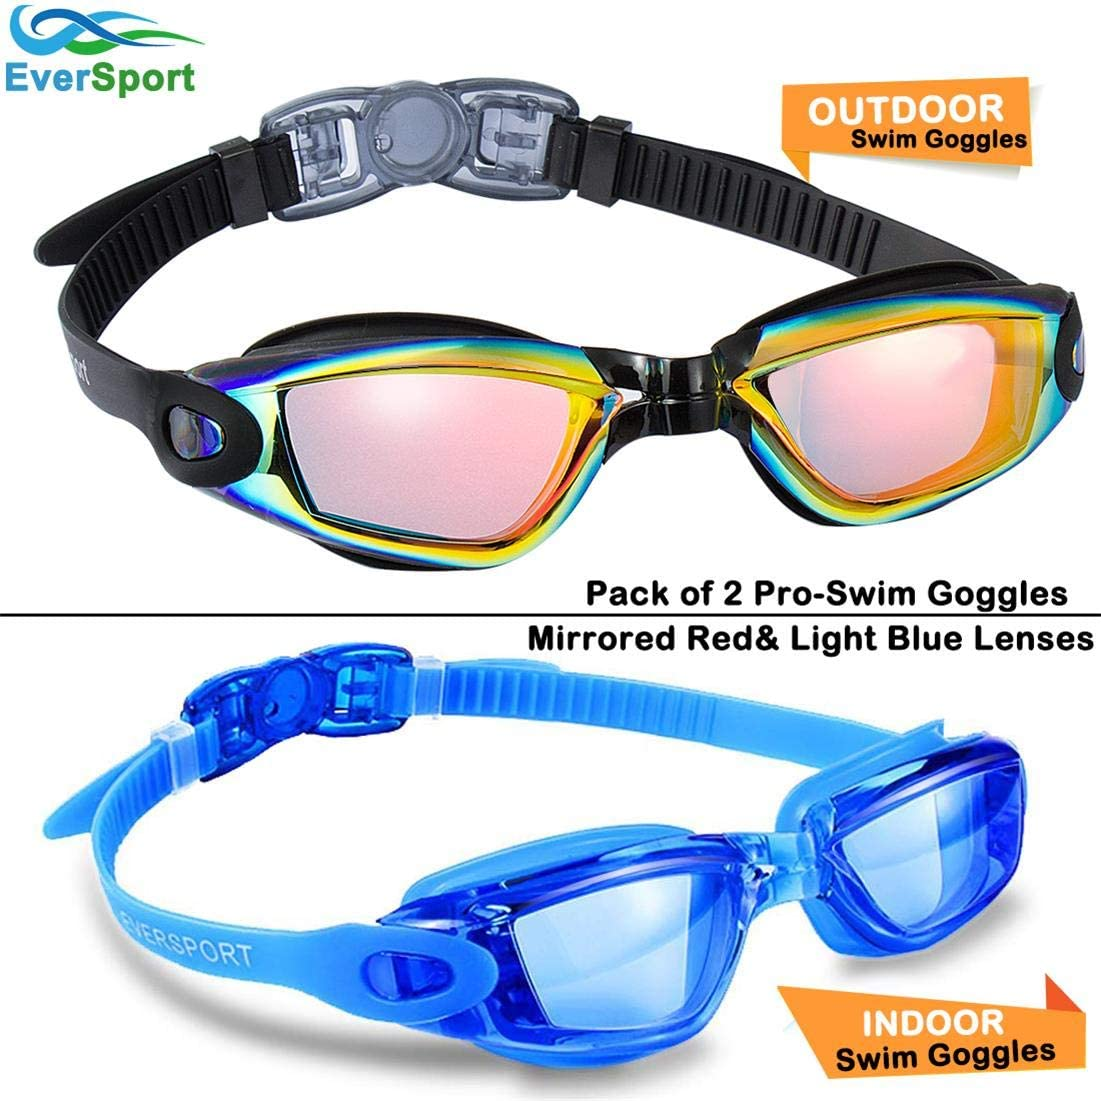 EverSport Swim Goggles Pack of 2 Swimming Goggles Shatter-Proof Swim Glasses No Leaking Anti Fog UV Protection for Adult Men Women Youth Kids Child Watertight Triathlon Goggle Mirrored//Clear Lens